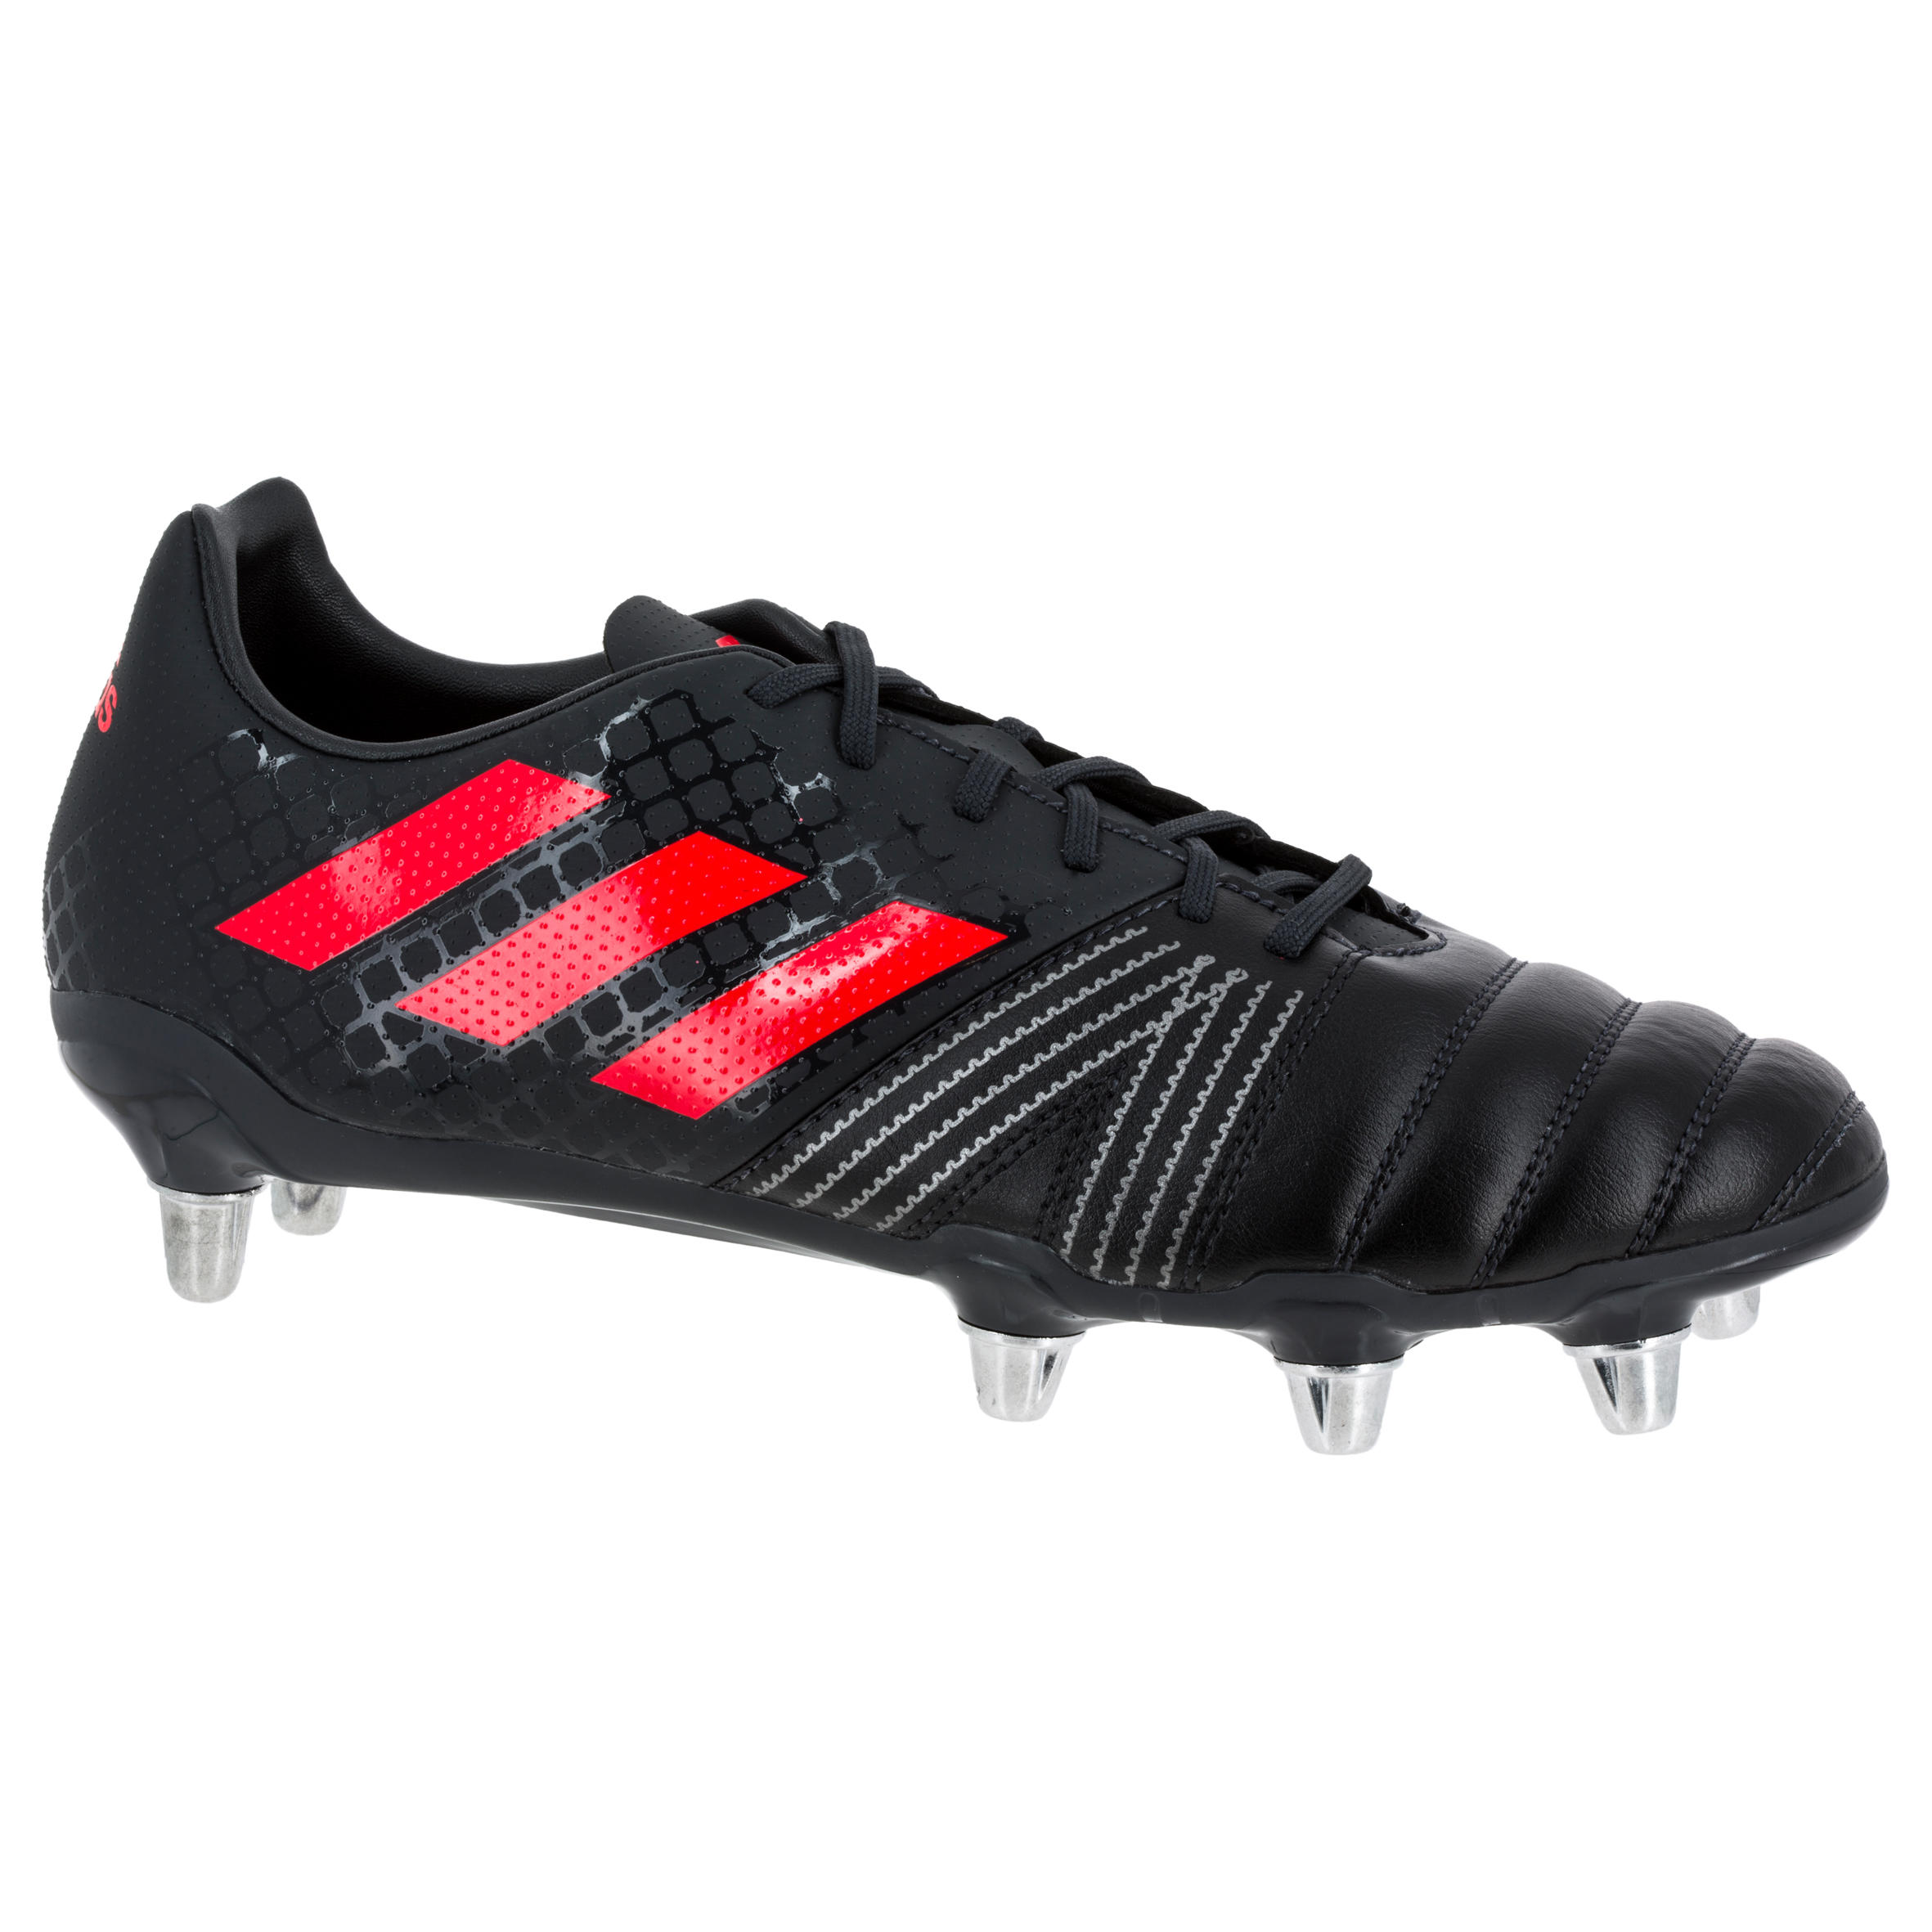 Rugby 8 Kakari Chaussures Crampons Grisrouge Adidas Adulte De Sg wvnmN80O